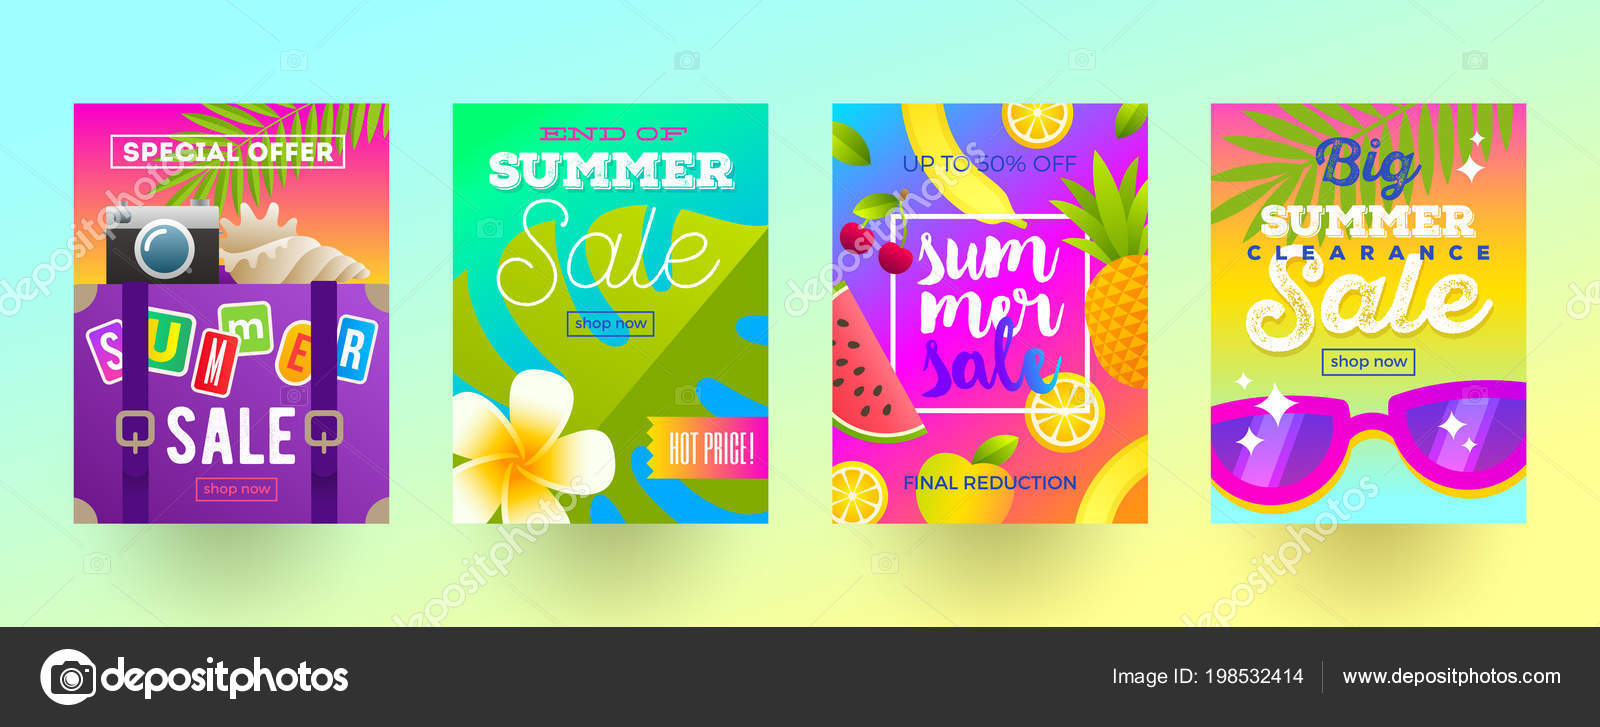 Travel Promotion Banners Blue Vintage Banners